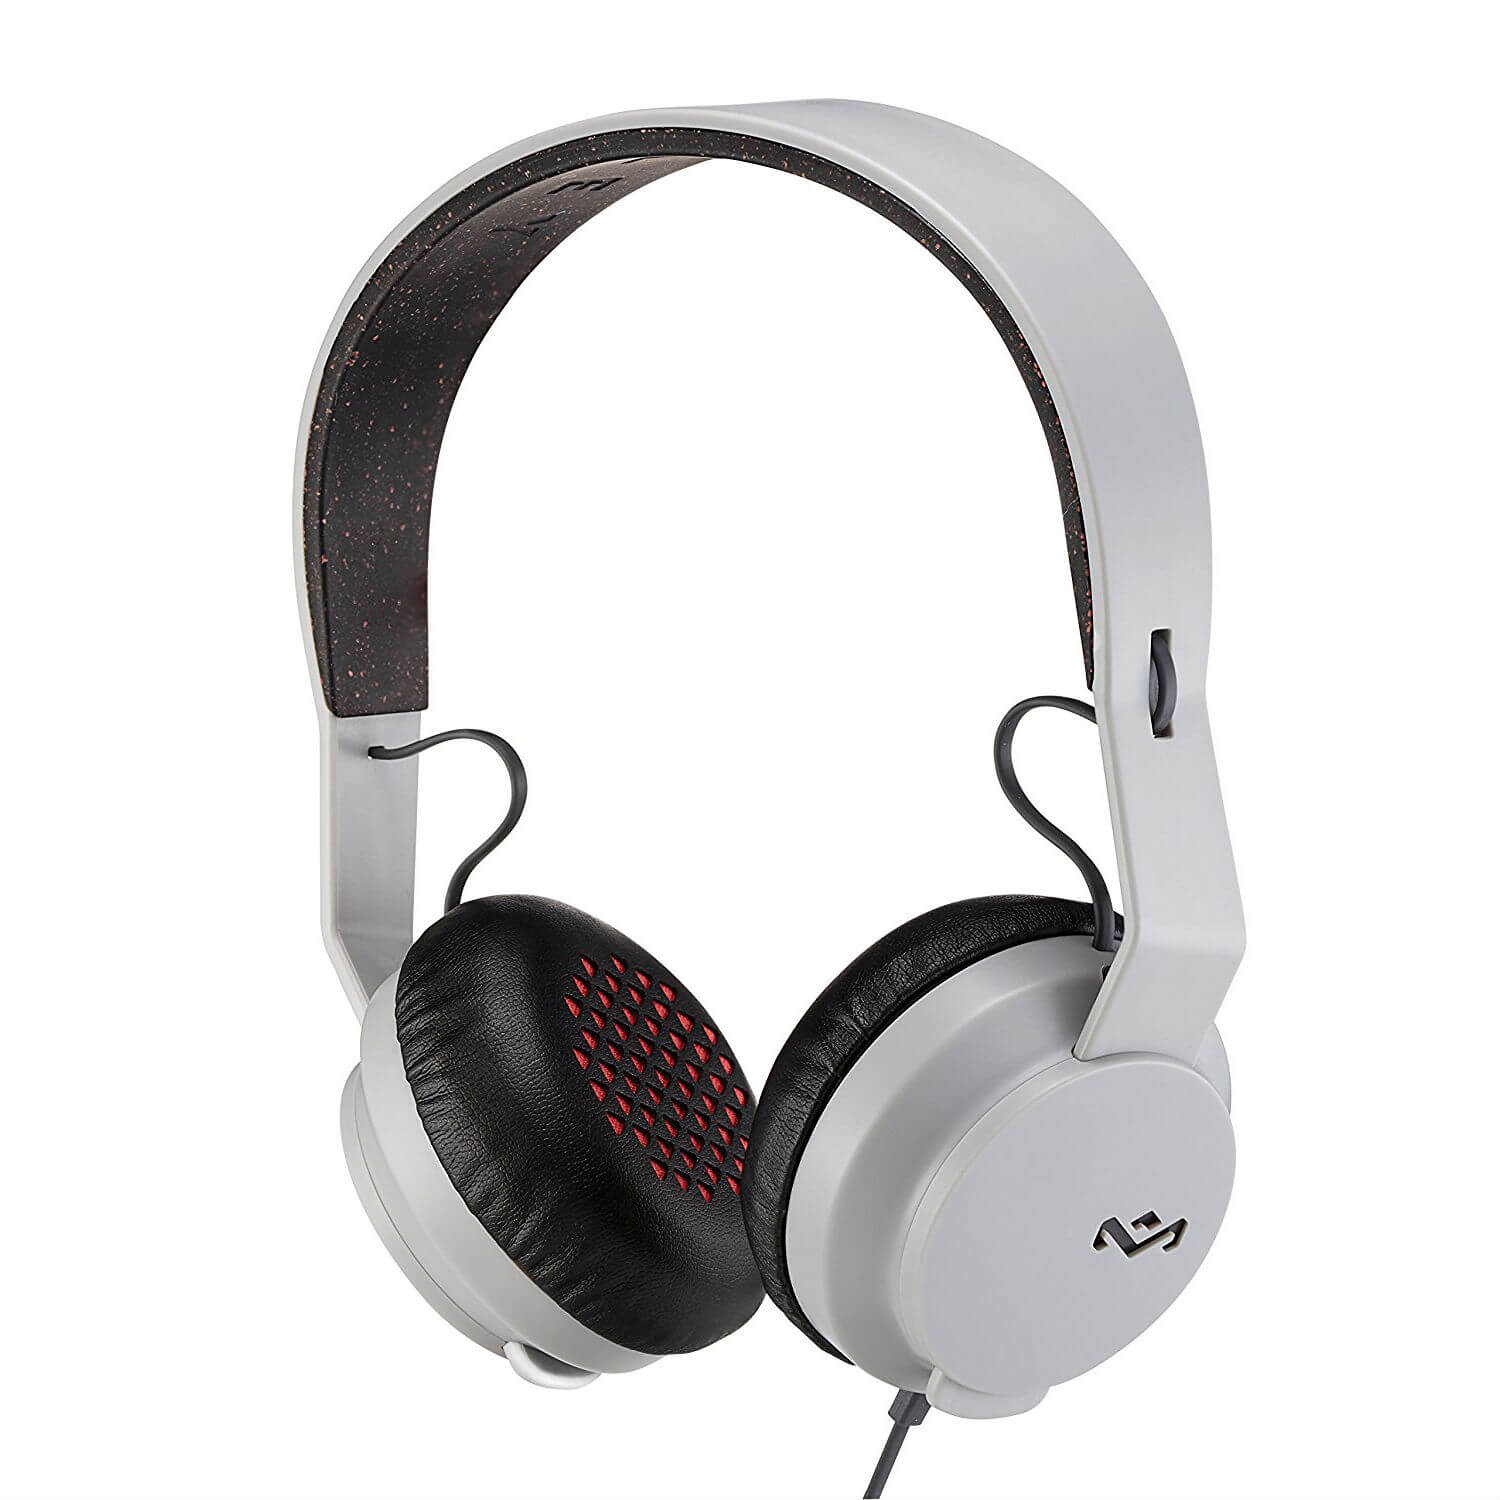 The House of Marley The Roar On-Ear Headphones - слушалки за iPhone, iPod и устройства с 3.5 мм изход (сив)